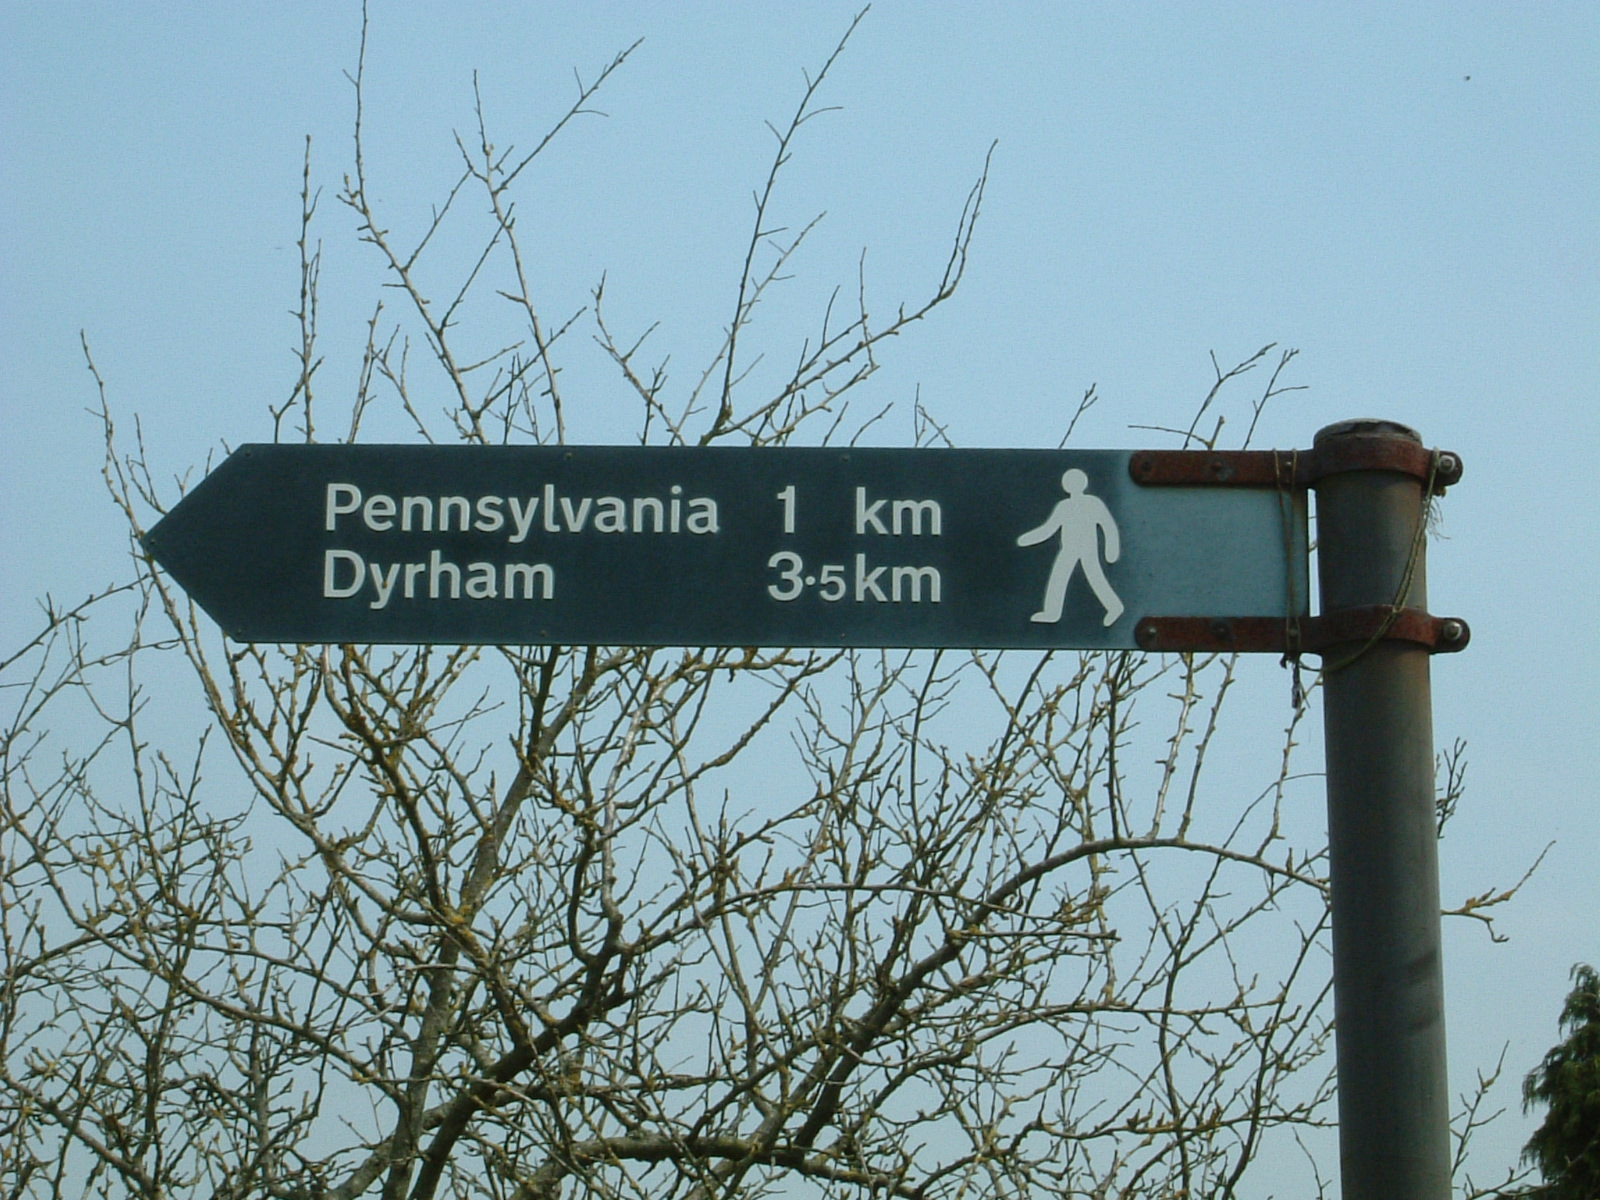 A sign in Cold Ashton pointing towards 'Pennsylvania'